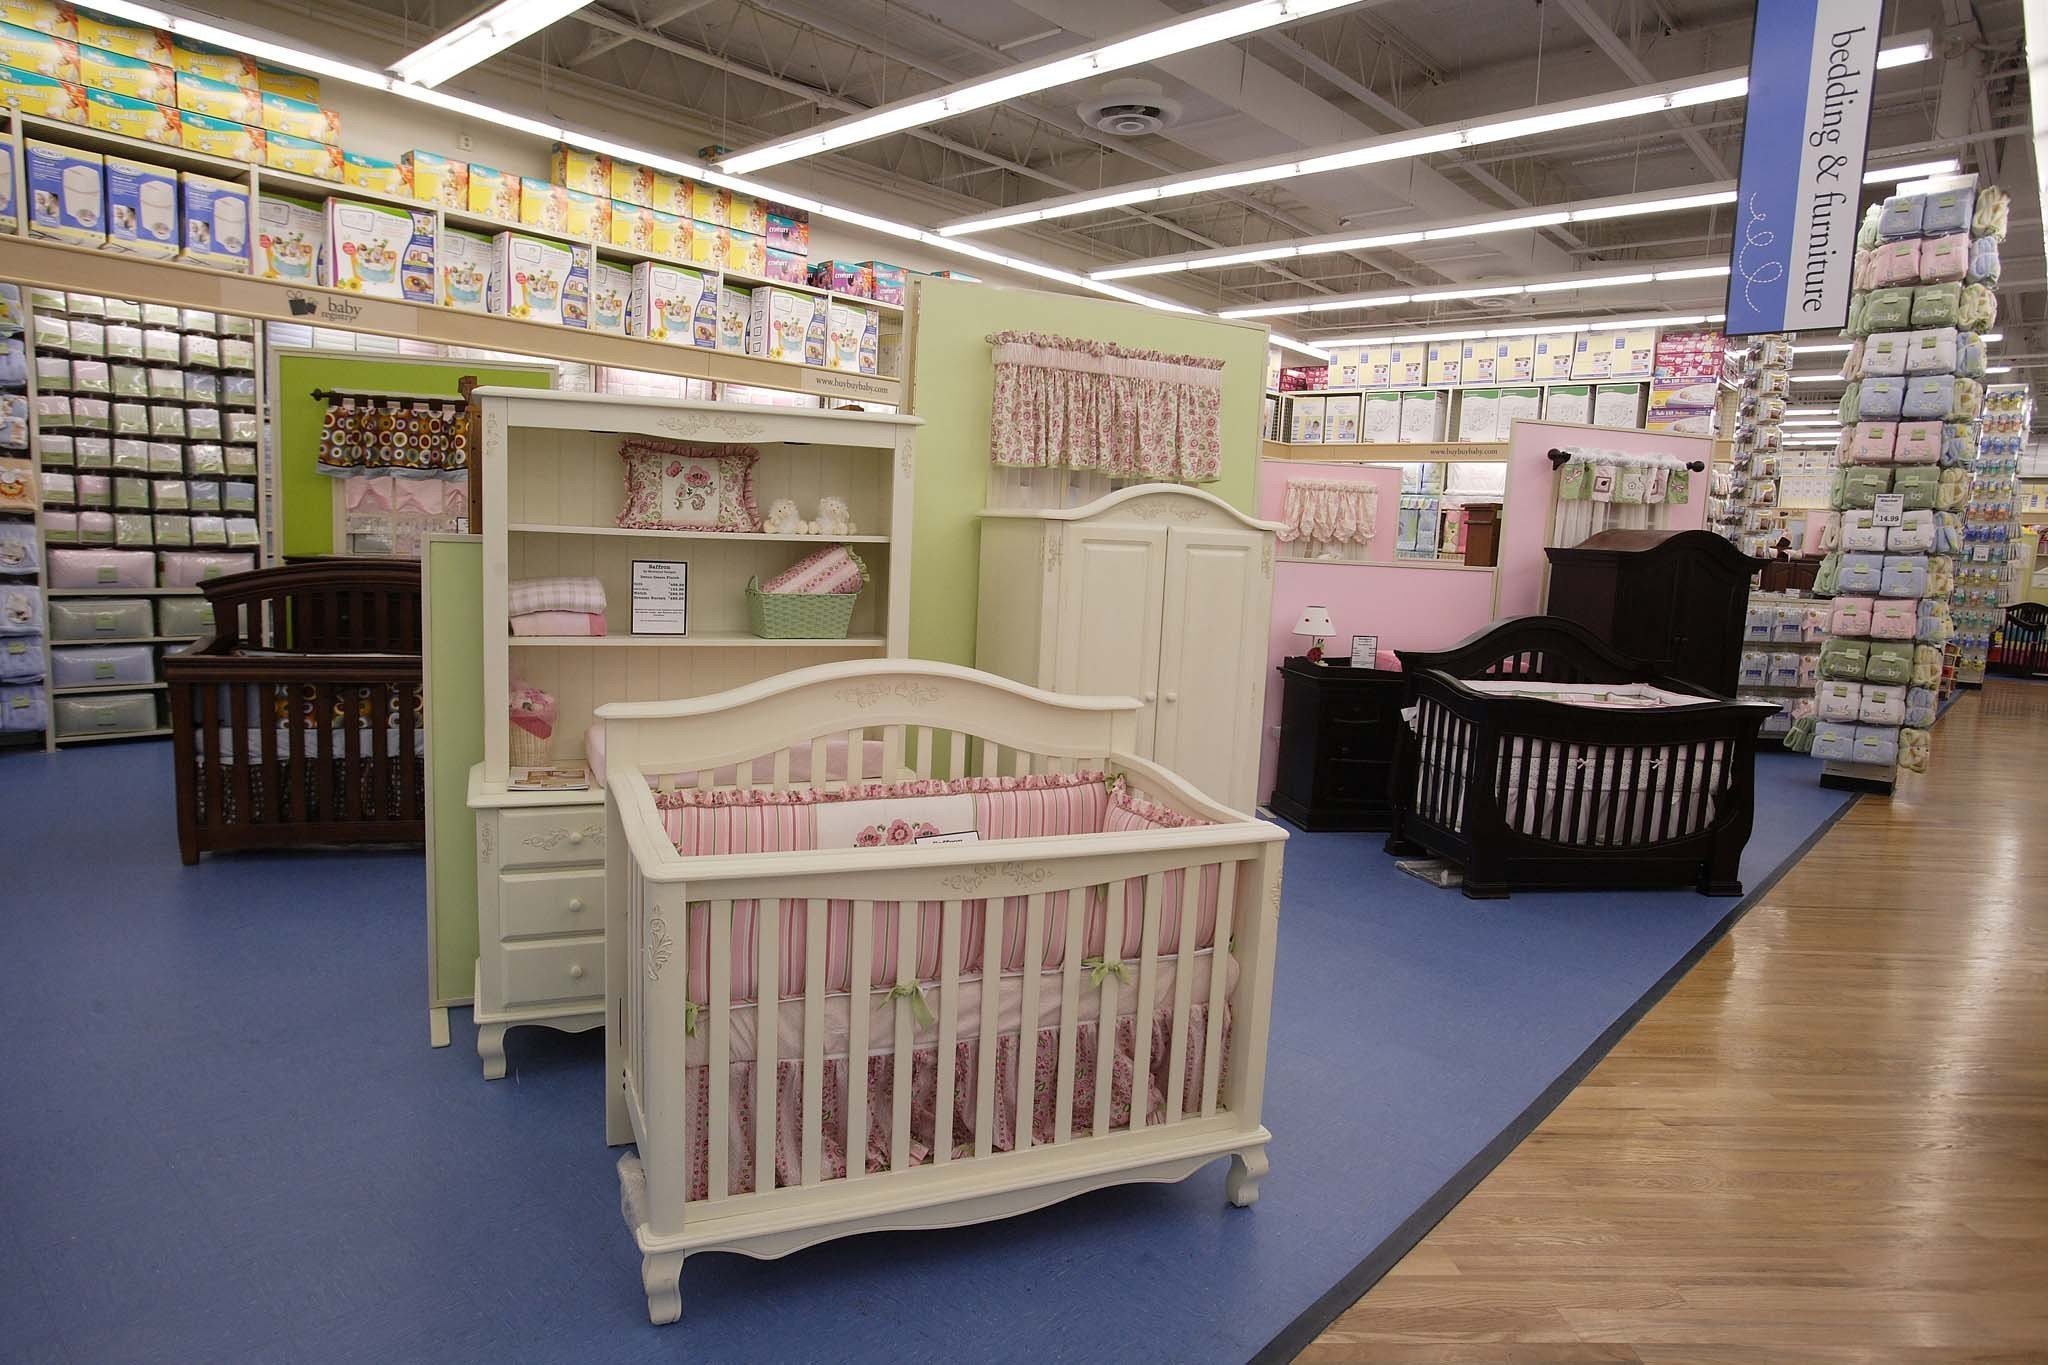 Best baby stores for ts apparel and toys in NYC